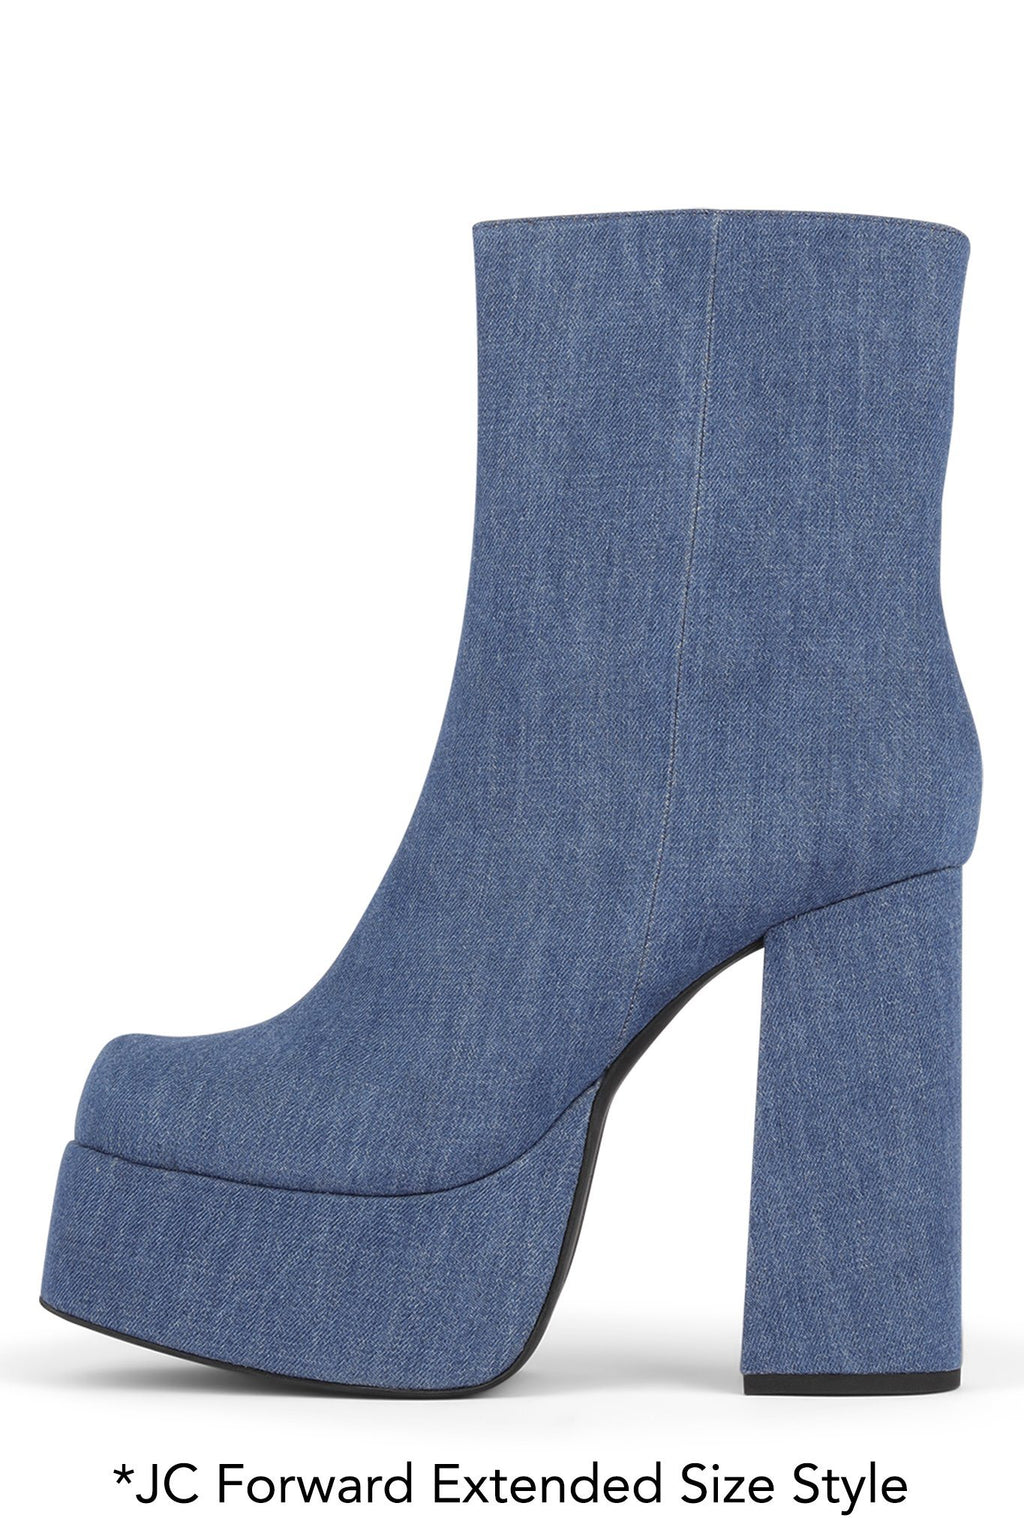 ARANEAE Platform Boot HS Blue Denim 12